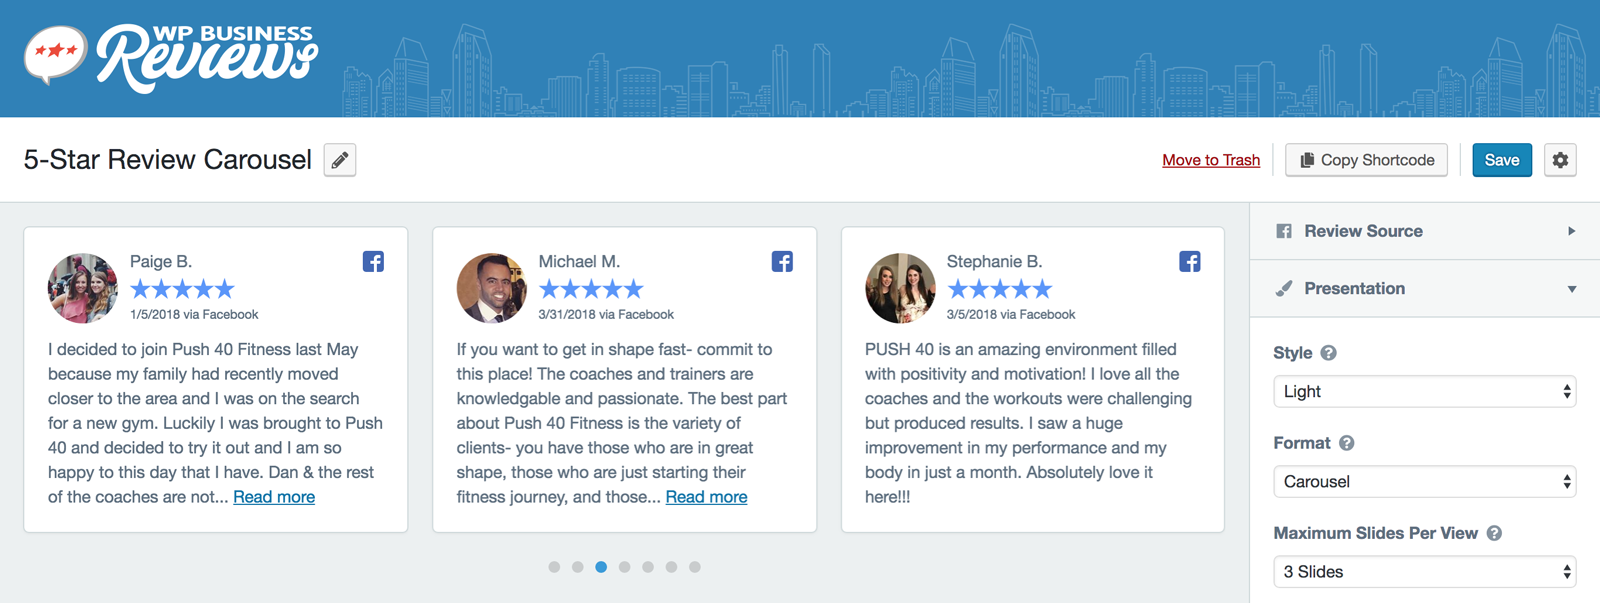 A carousel of reviews